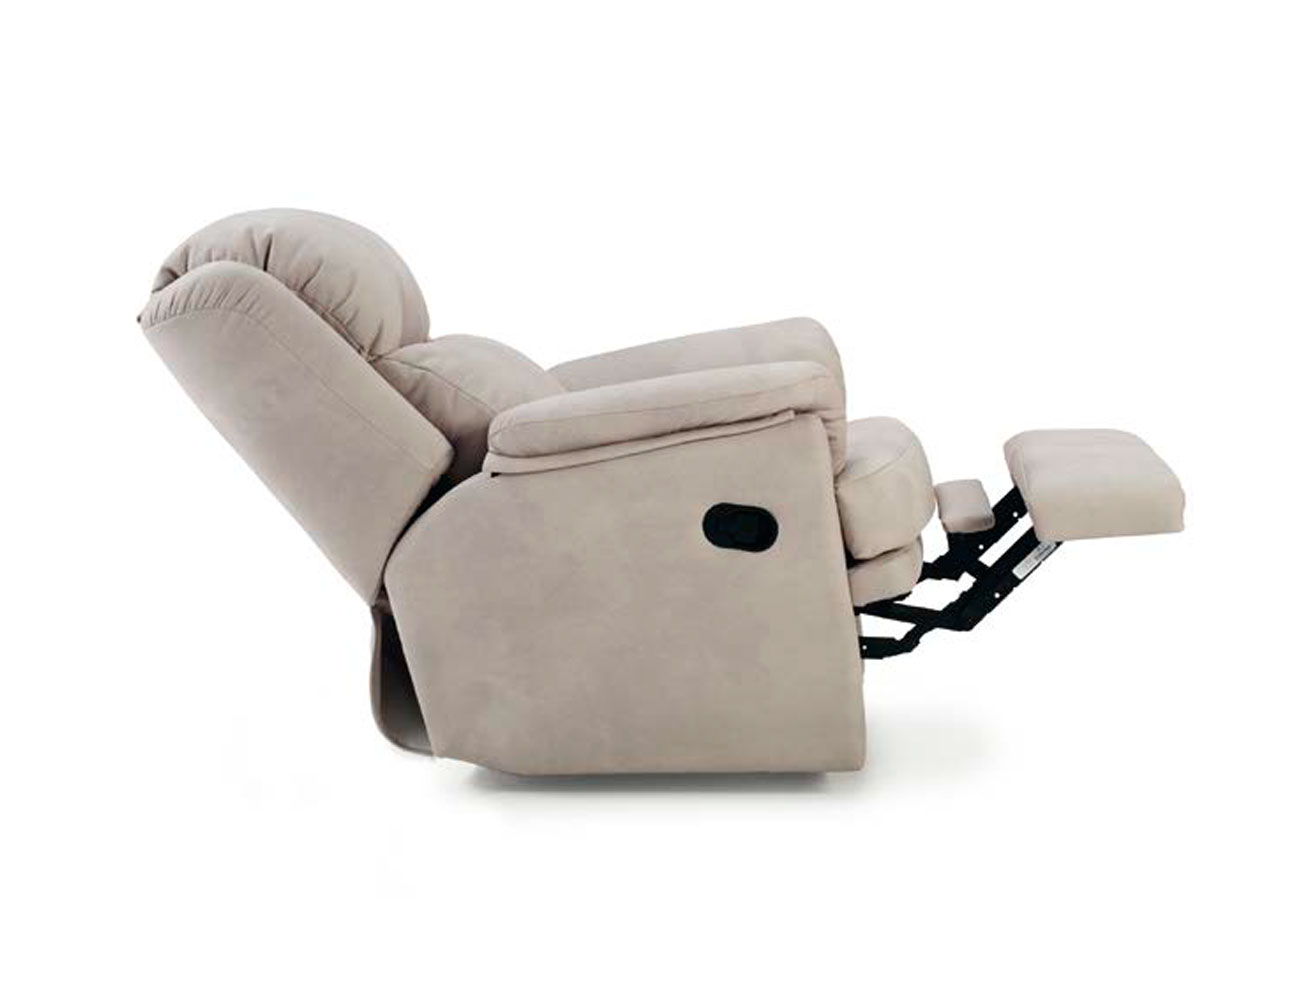 Sillon relax manual palanca esther 14